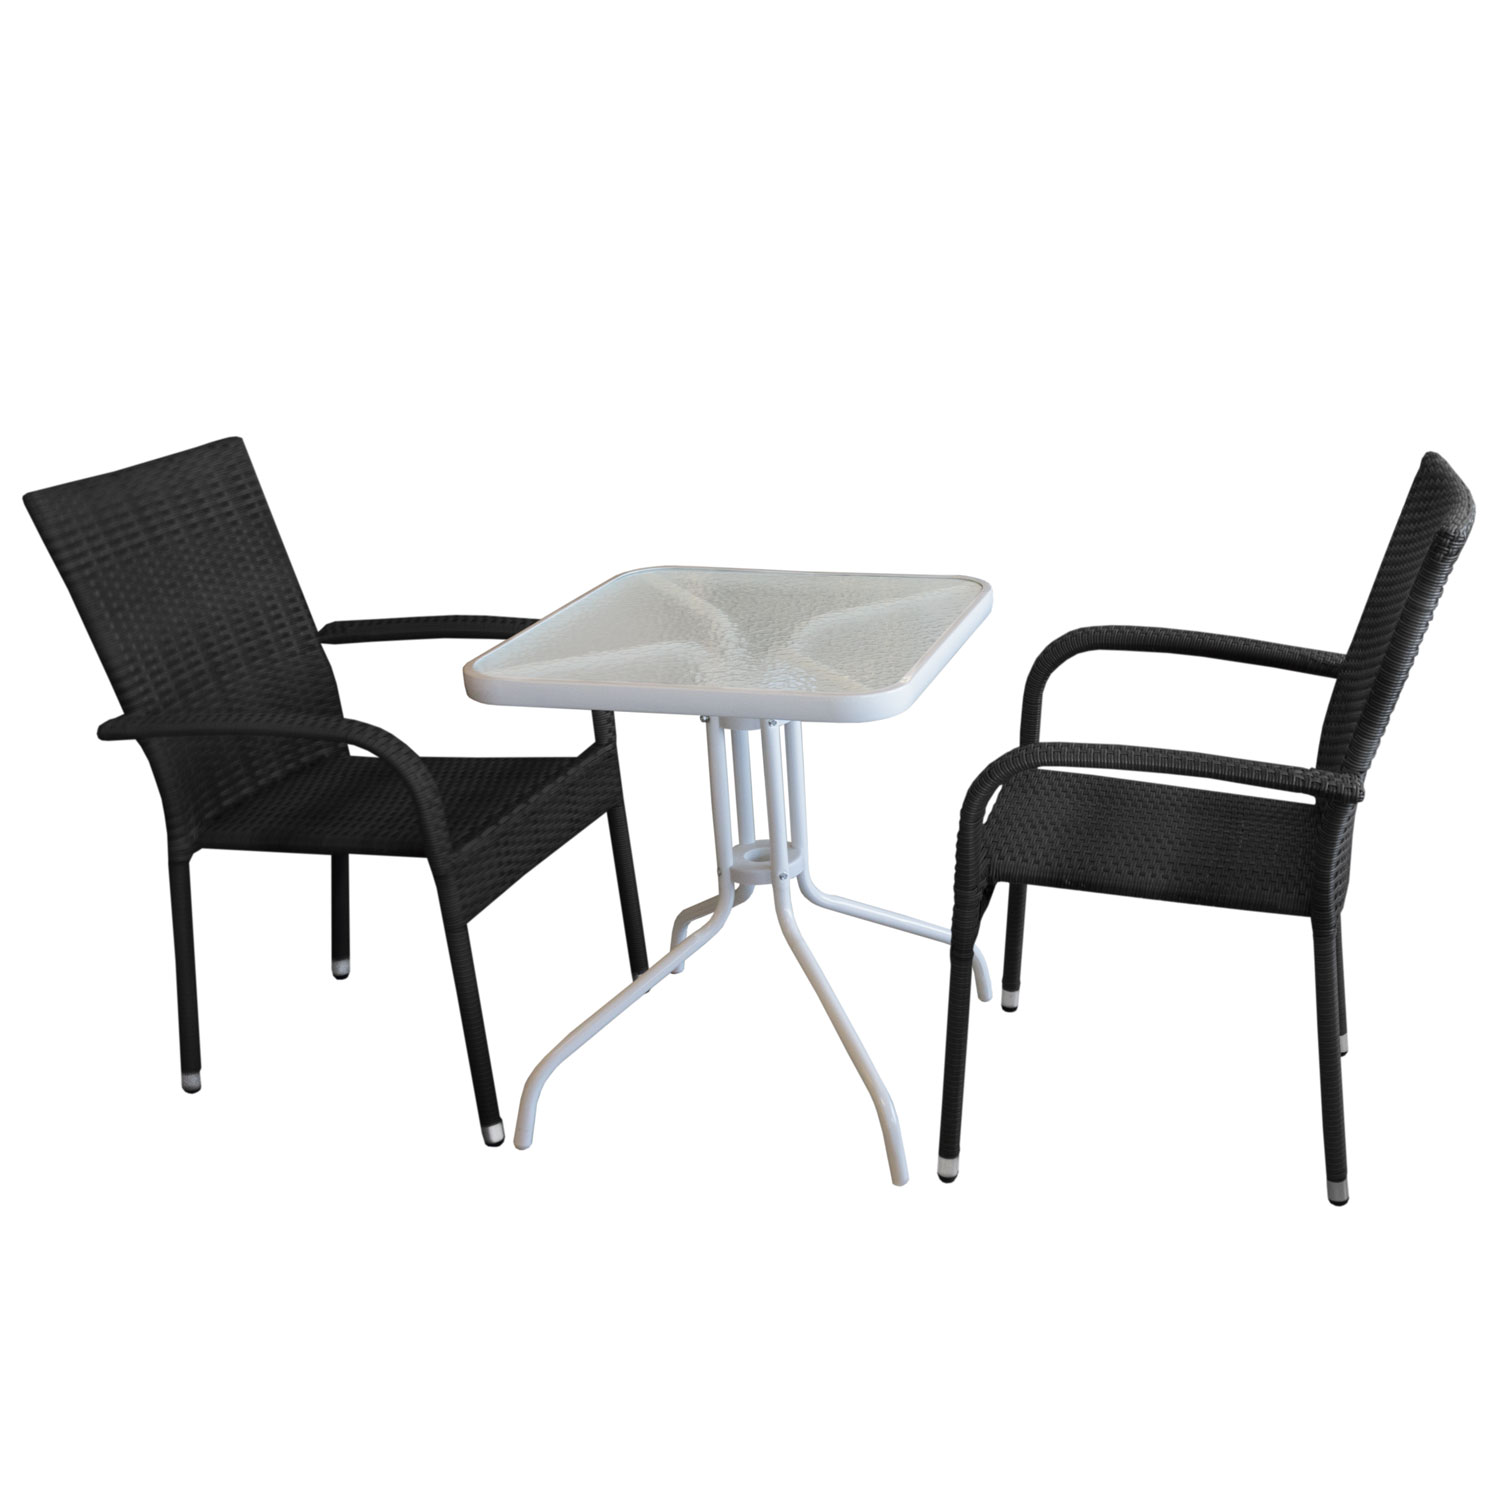 3tlg balkonm bel set bistrotisch glastisch 60x60cm wei 2x rattan gartensessel schwarz. Black Bedroom Furniture Sets. Home Design Ideas